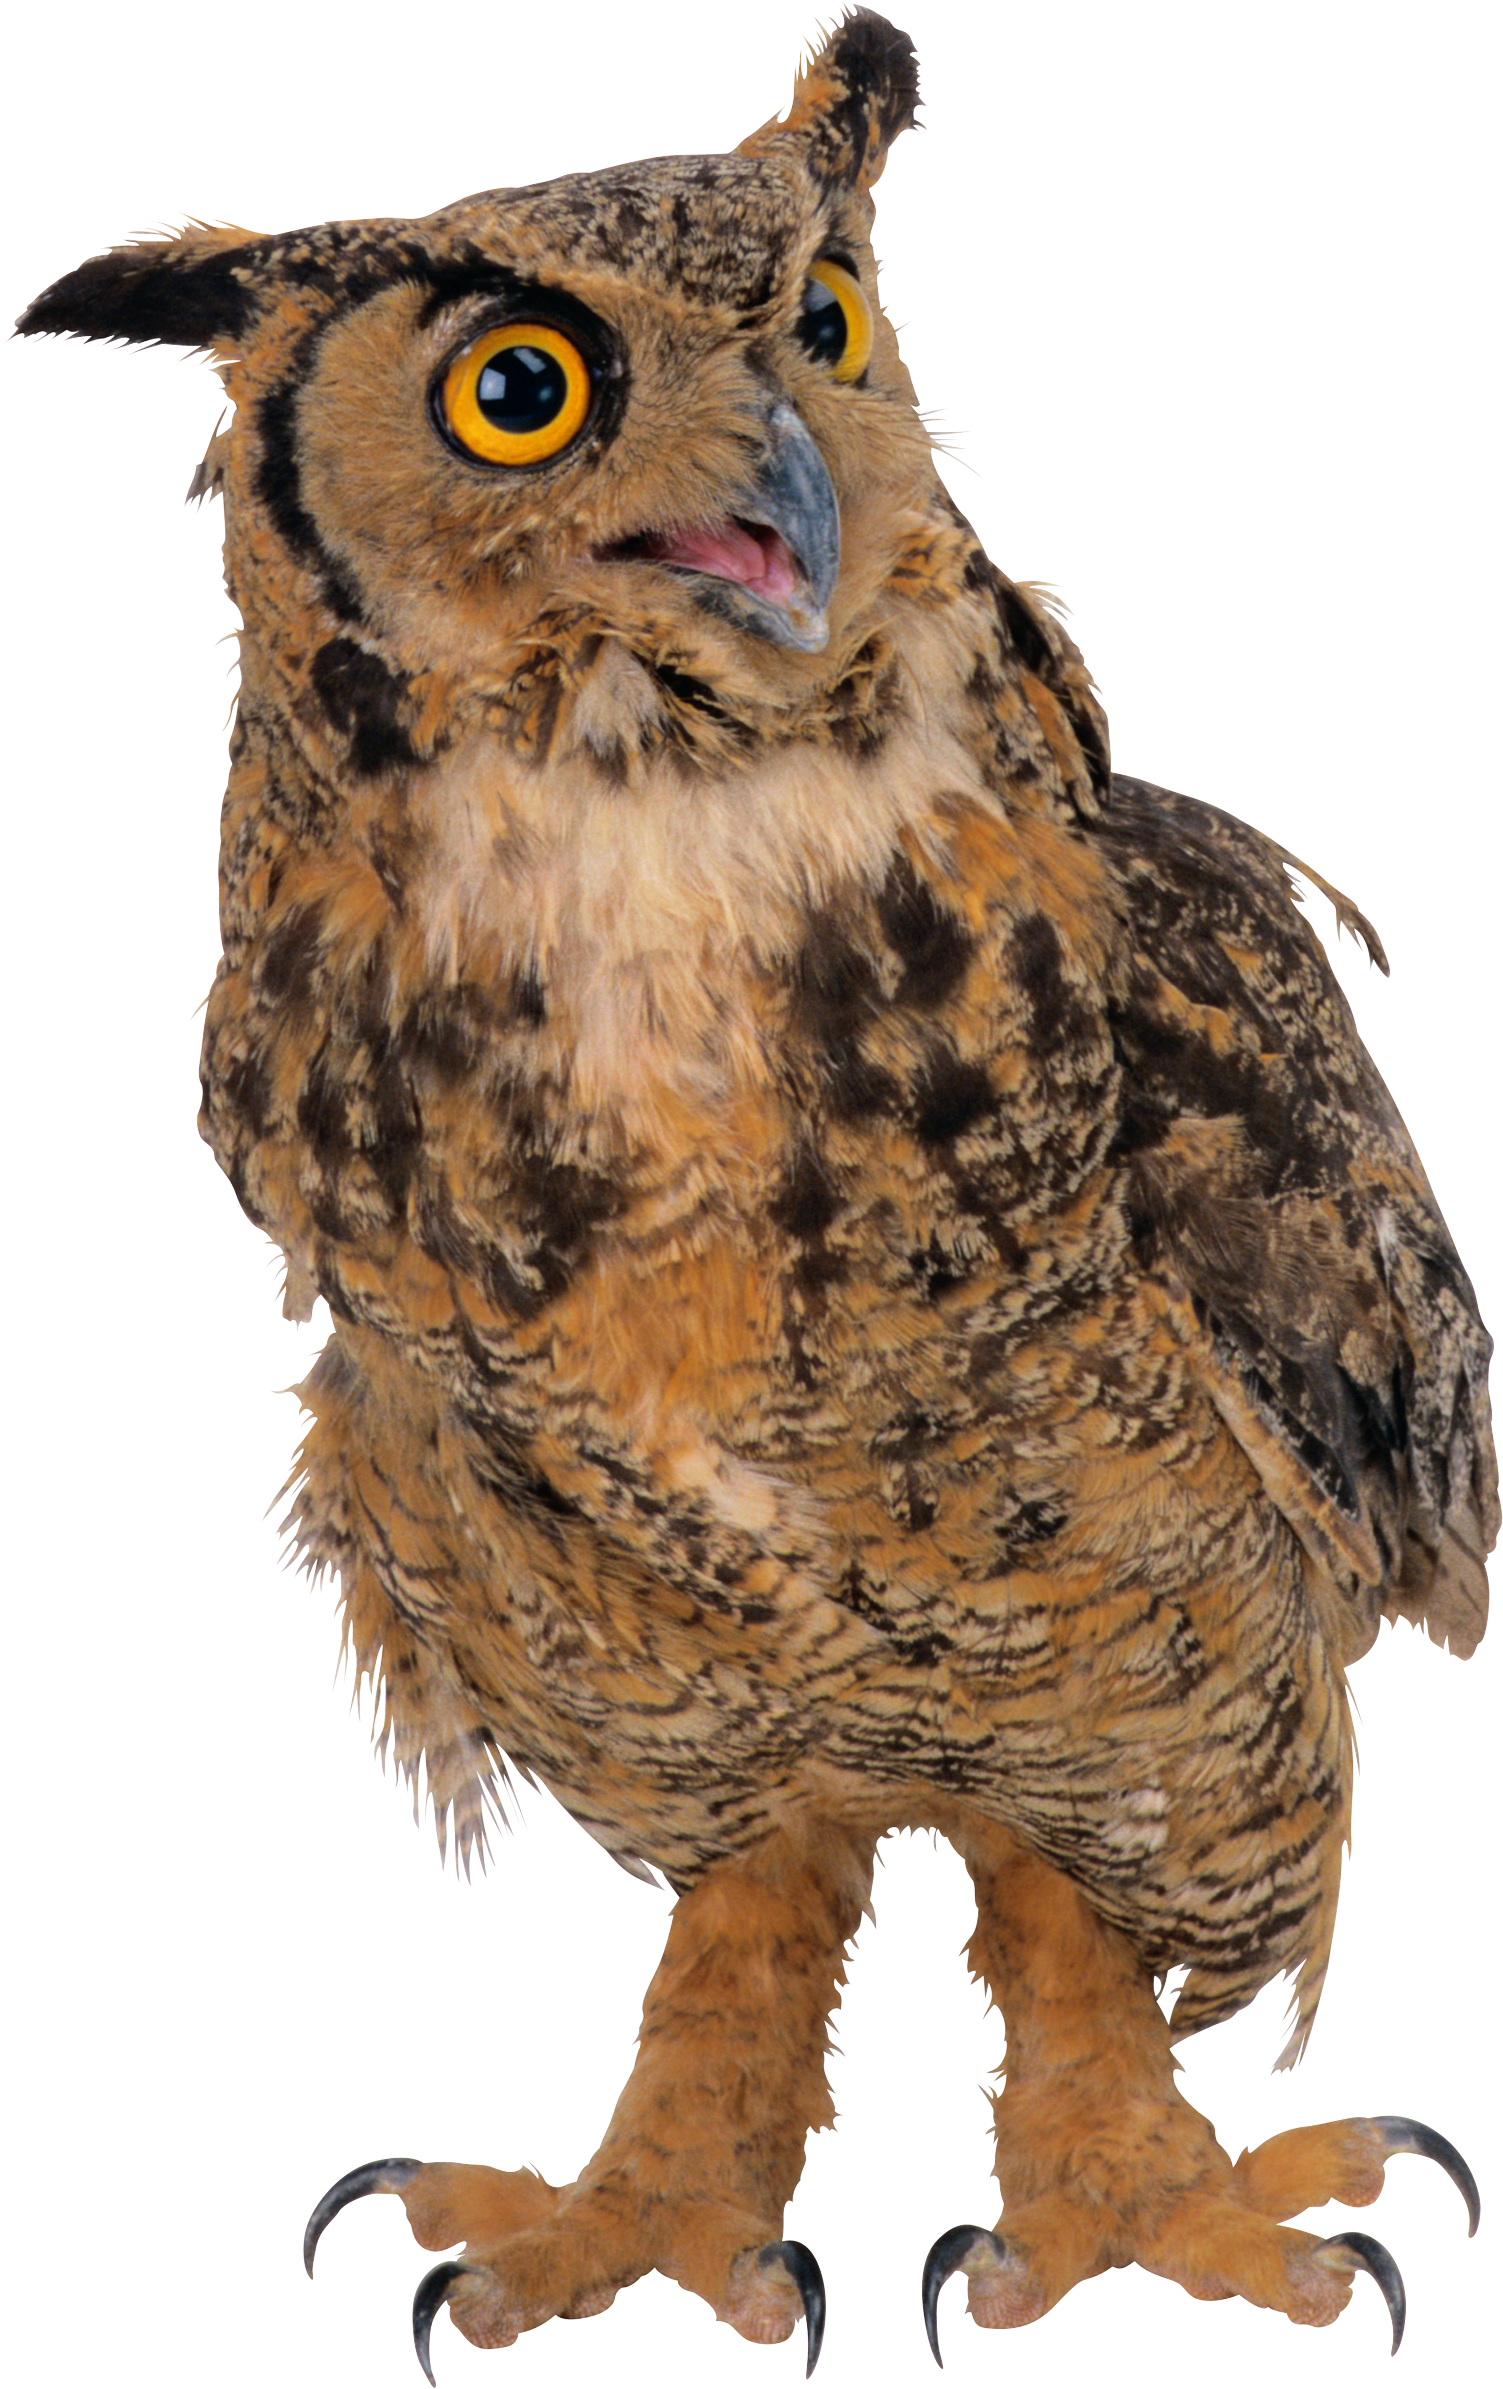 owl png images for download crazypngm crazy png images download #28969